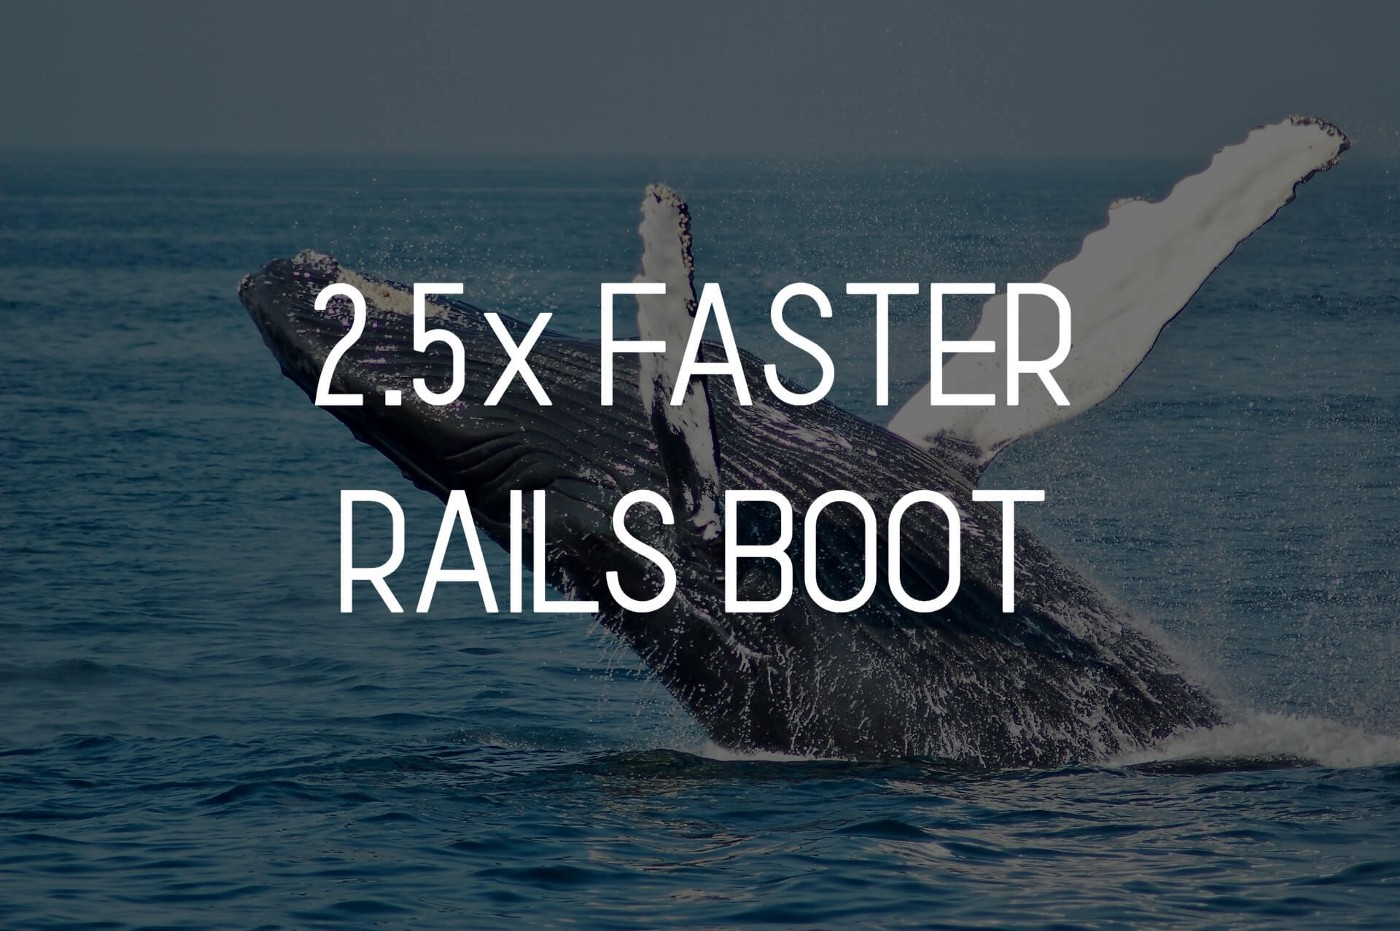 2.5x faster Rails boot (+ a whale on background)